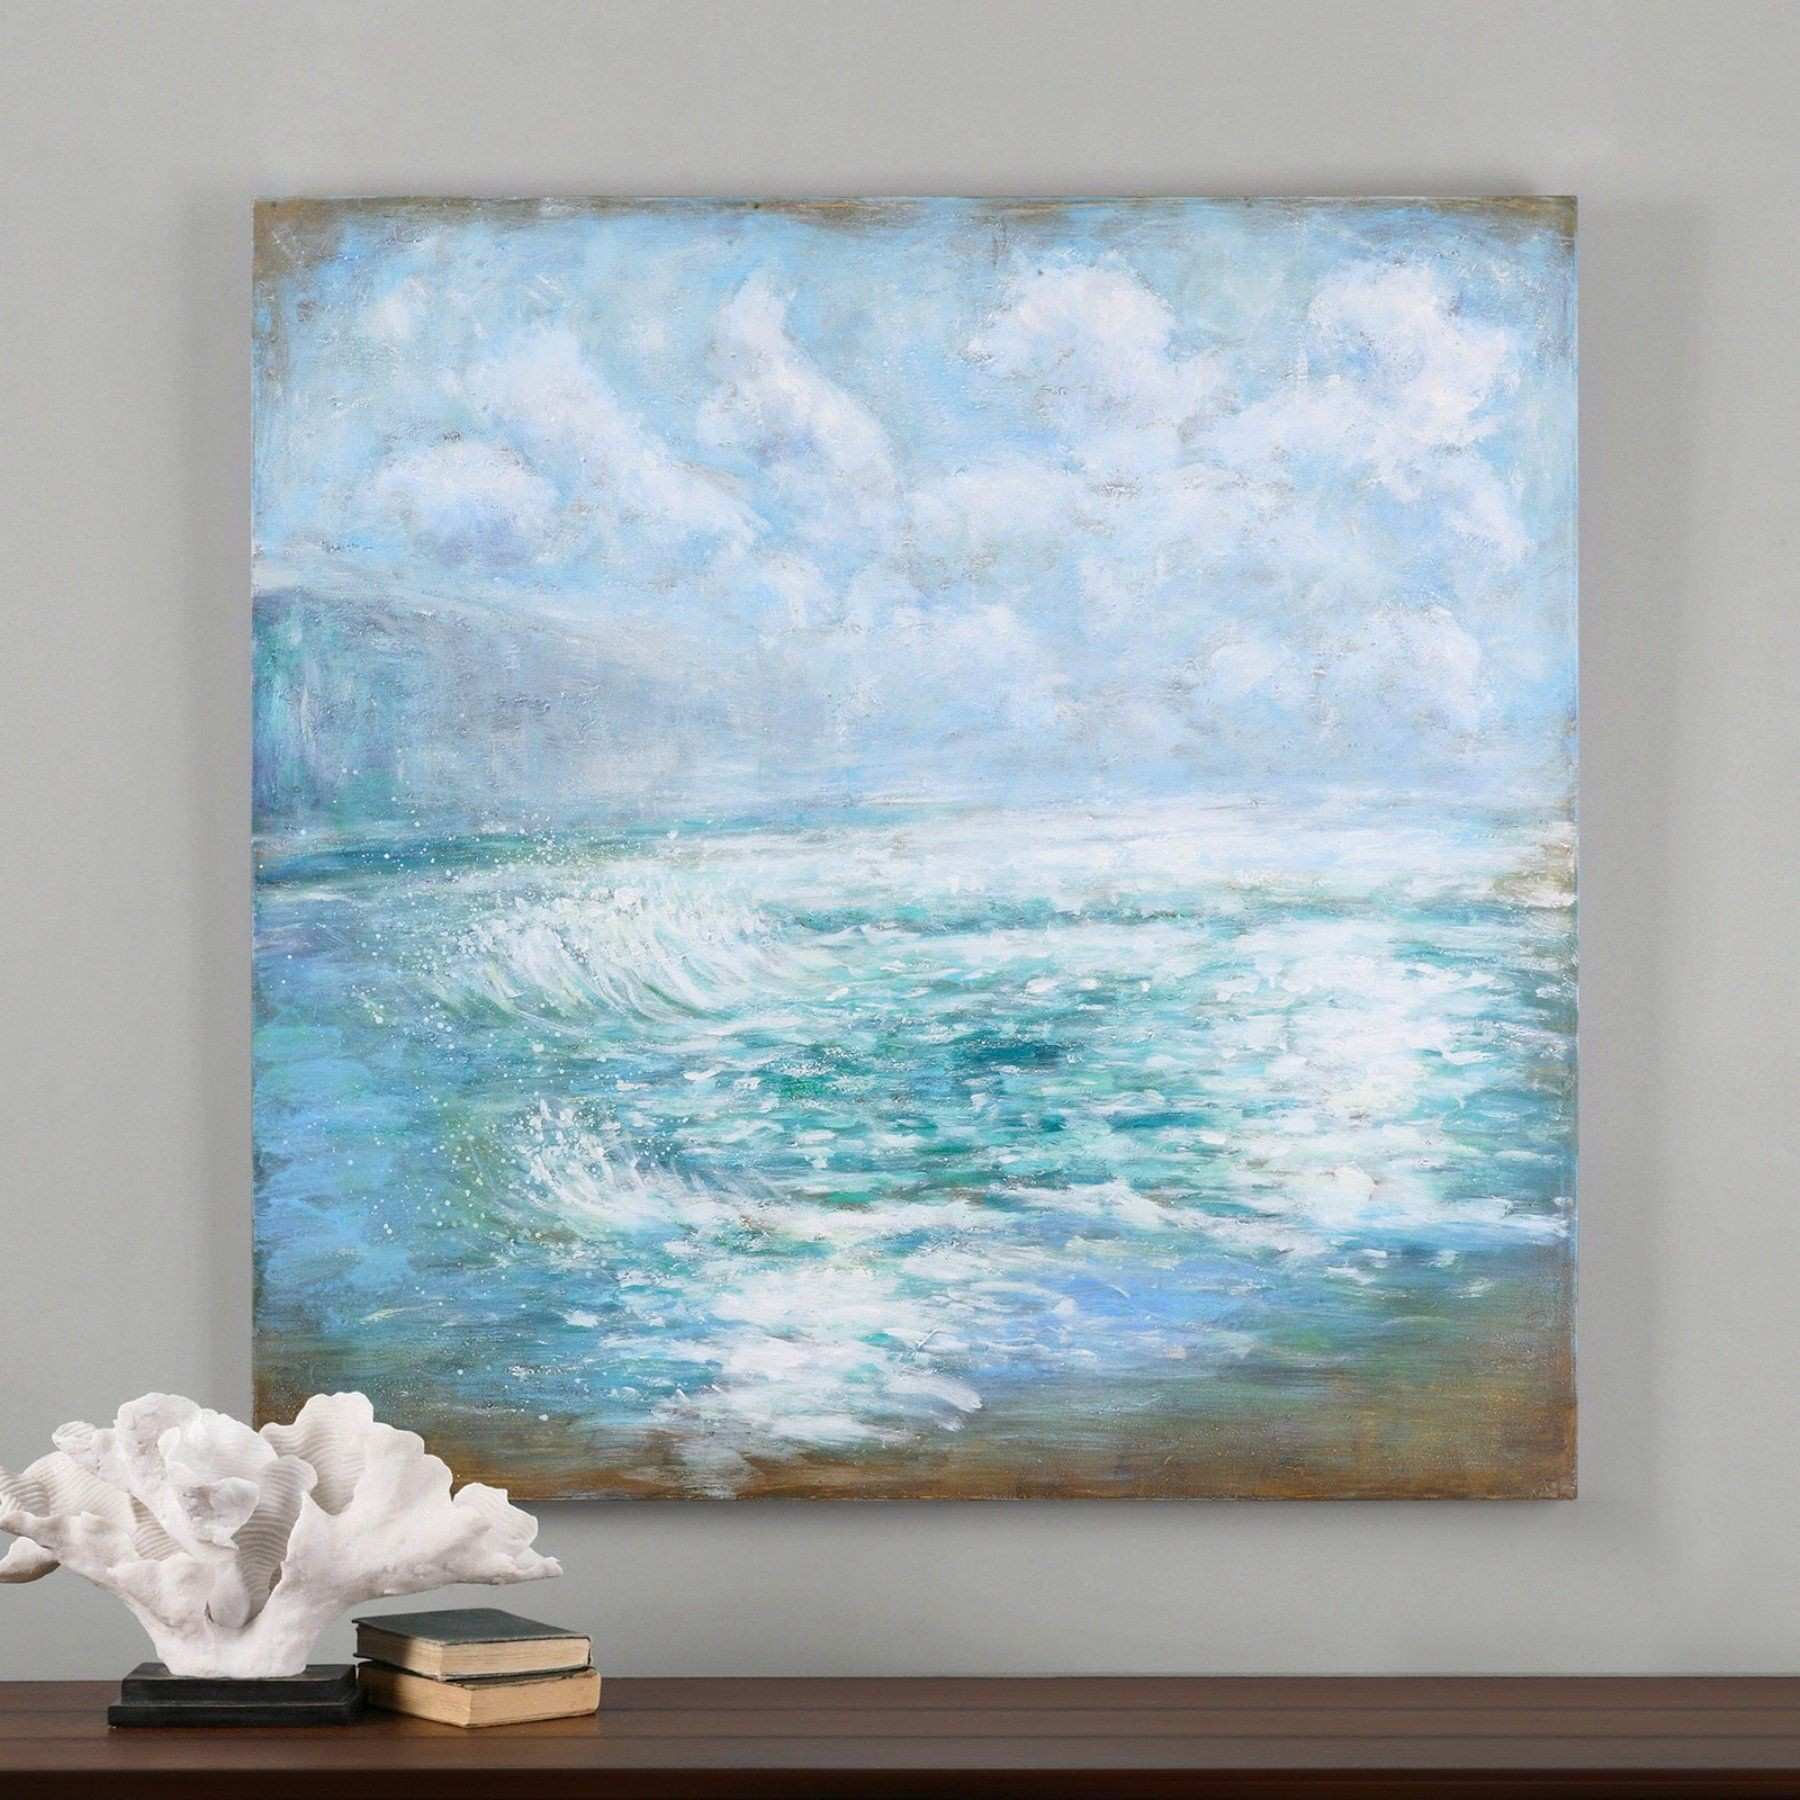 Uttermost Morning Swells Canvas Art 48W x 48H in